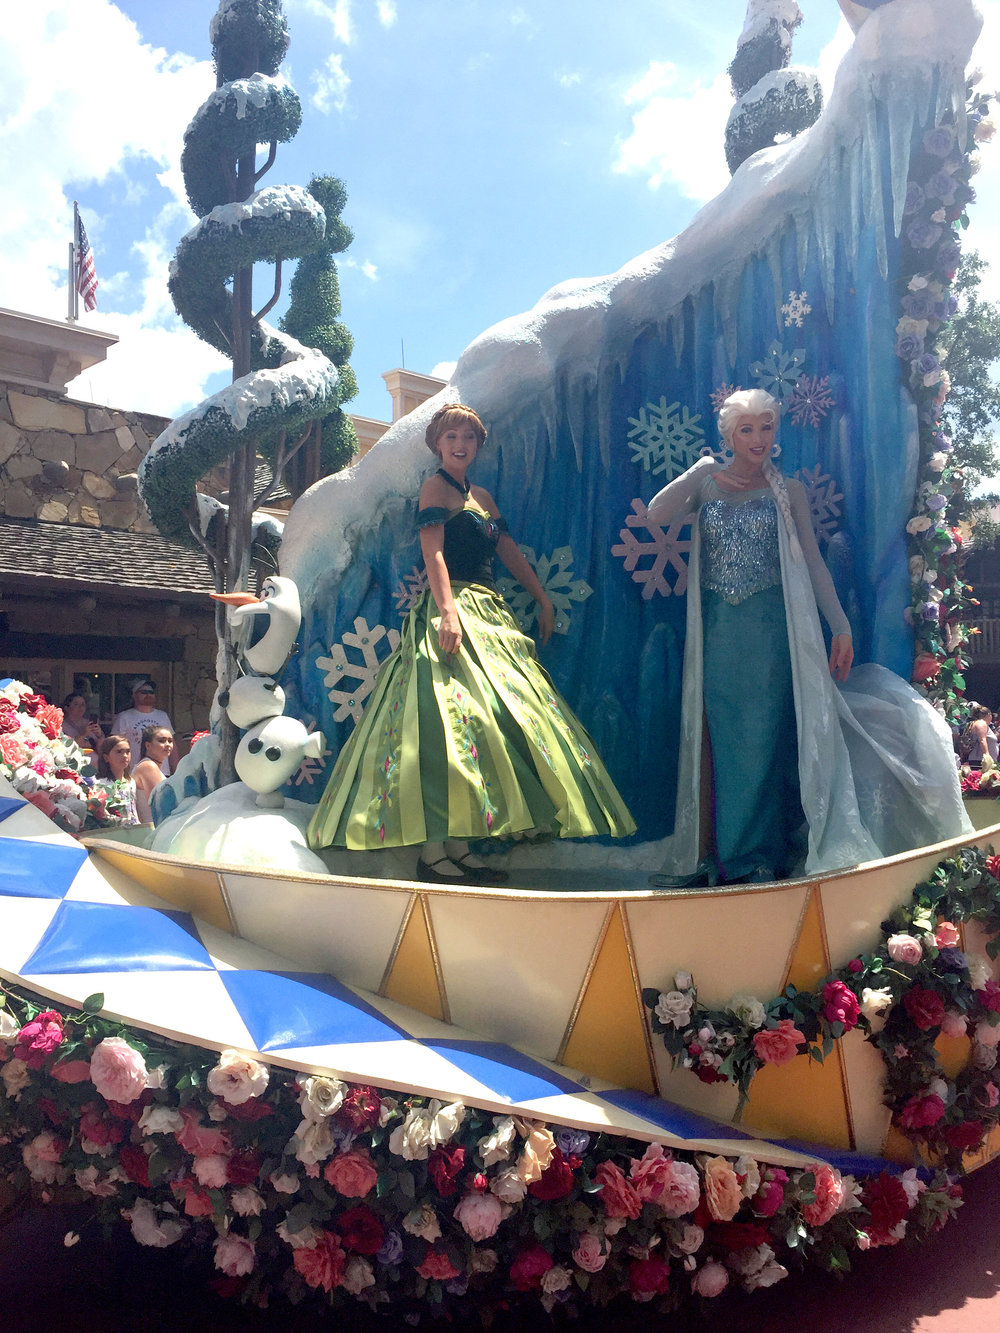 Anna and Elsa have covered their portion of the float in ice and snow, of course!